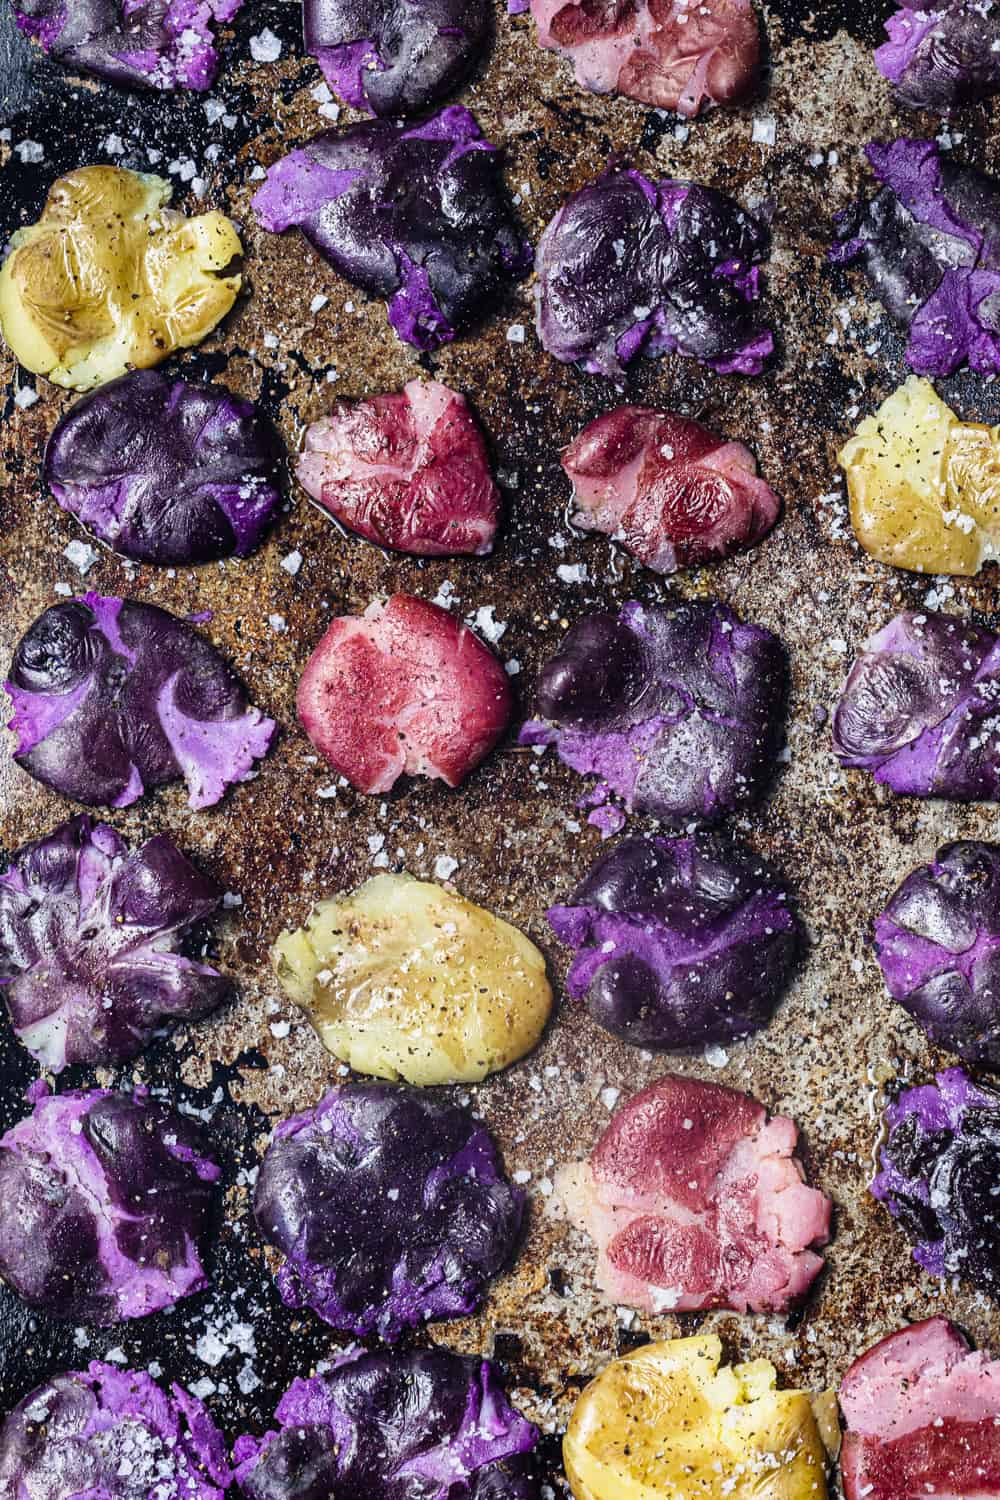 Smashed purple, pink and white potatoes on a baking sheet; pre-oven & overhead shot.